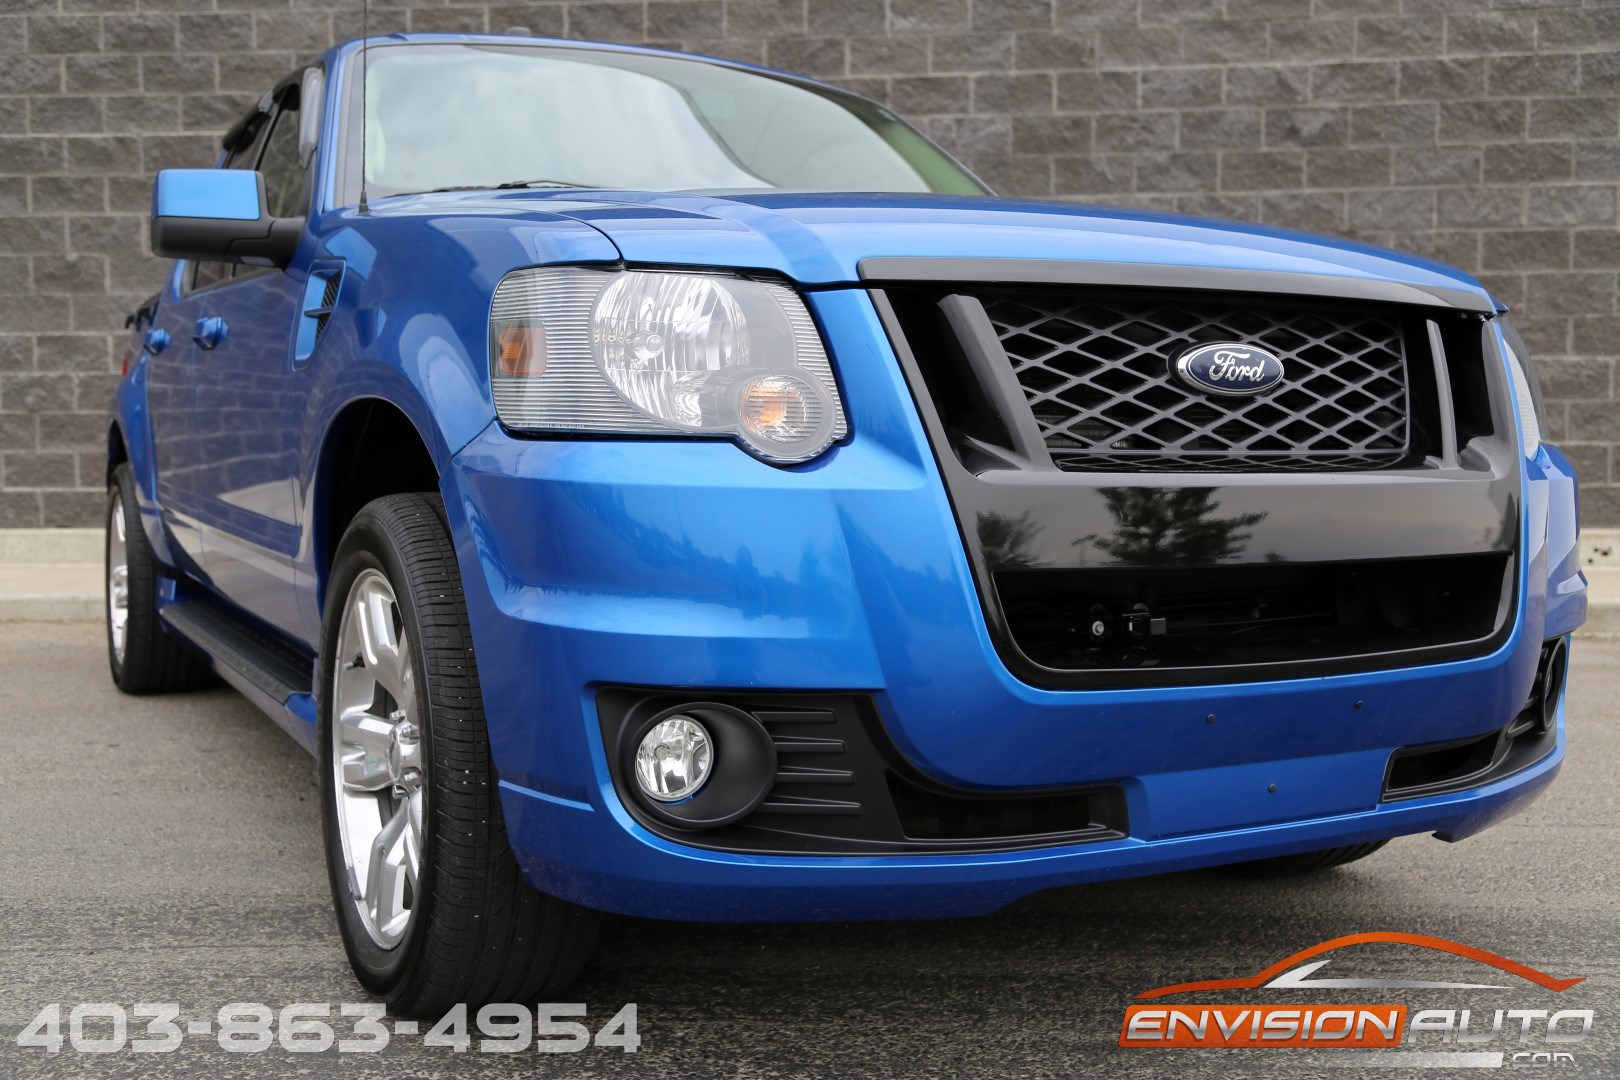 2010 Ford Sport Trac Adrenalin Awd One Owner Envision Auto